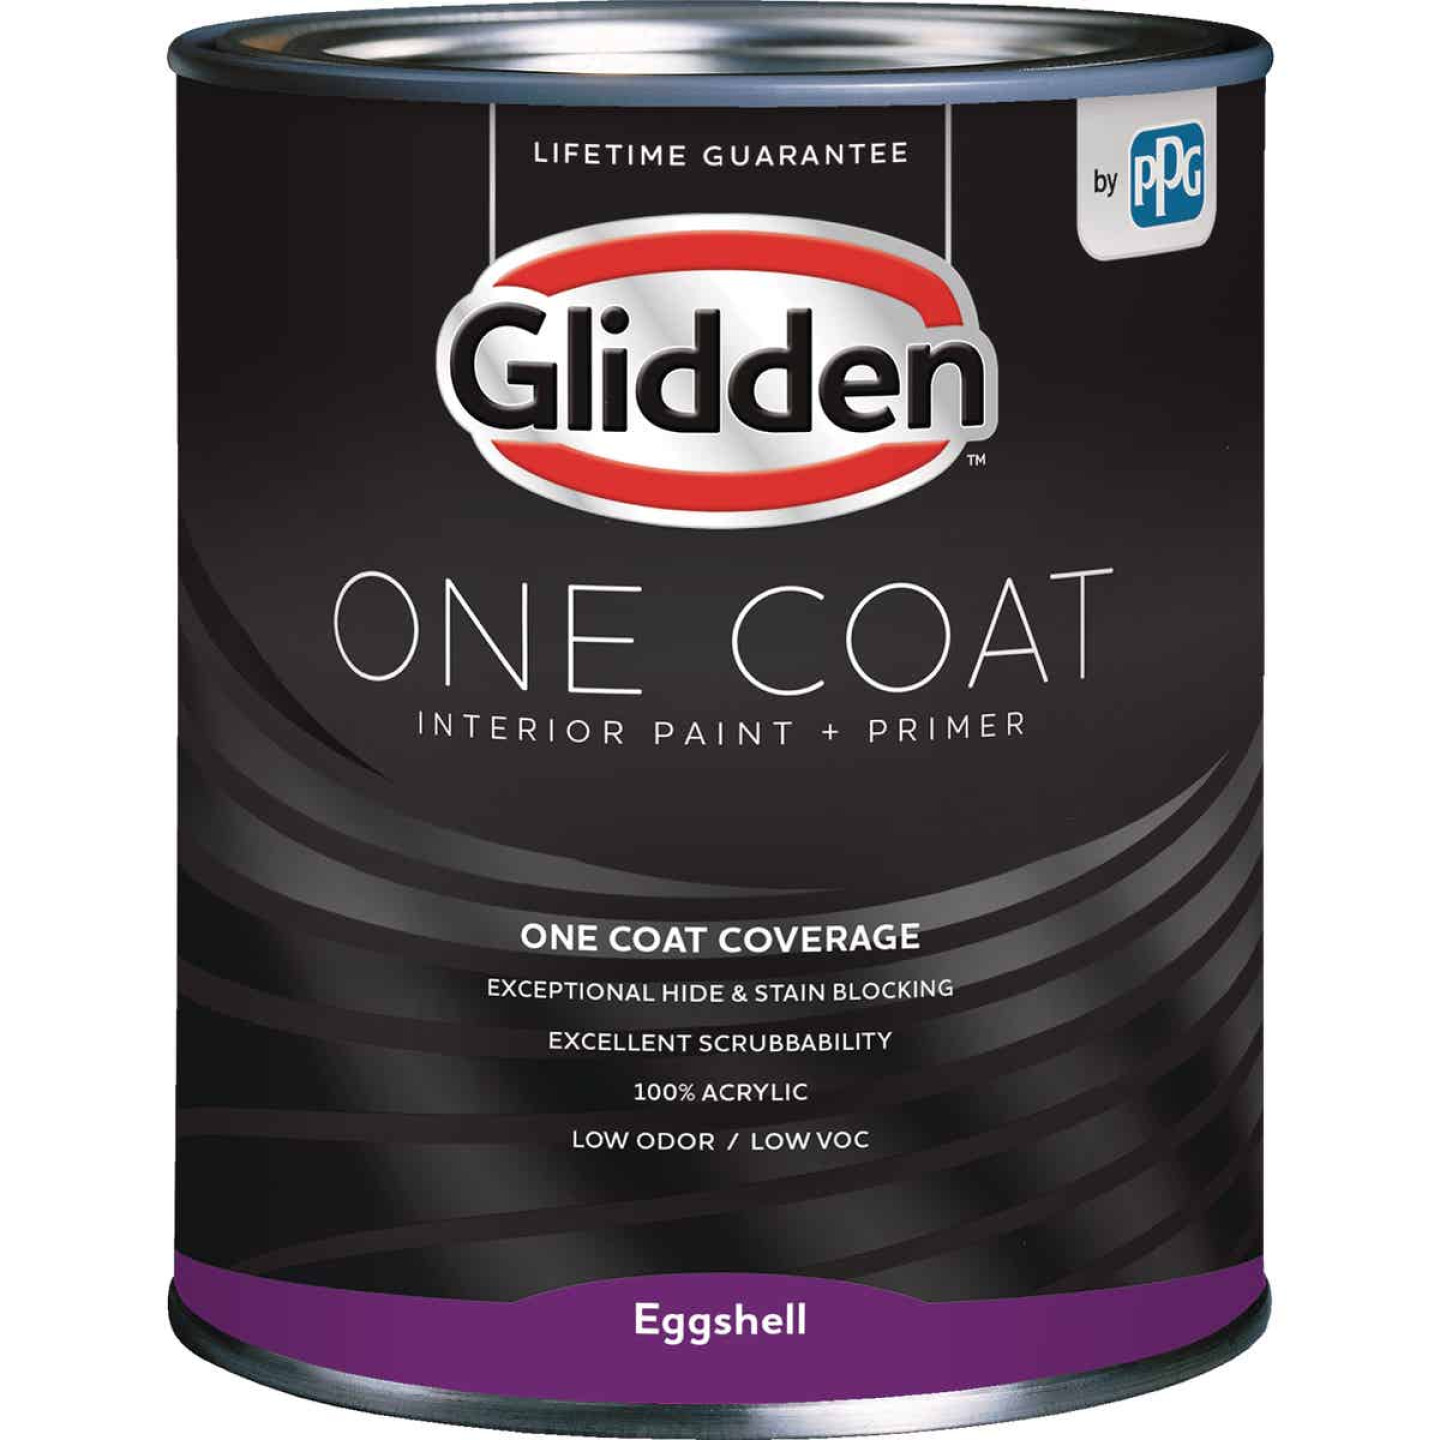 Glidden One Coat Interior Paint + Primer Eggshell Midtone Base Quart Image 1